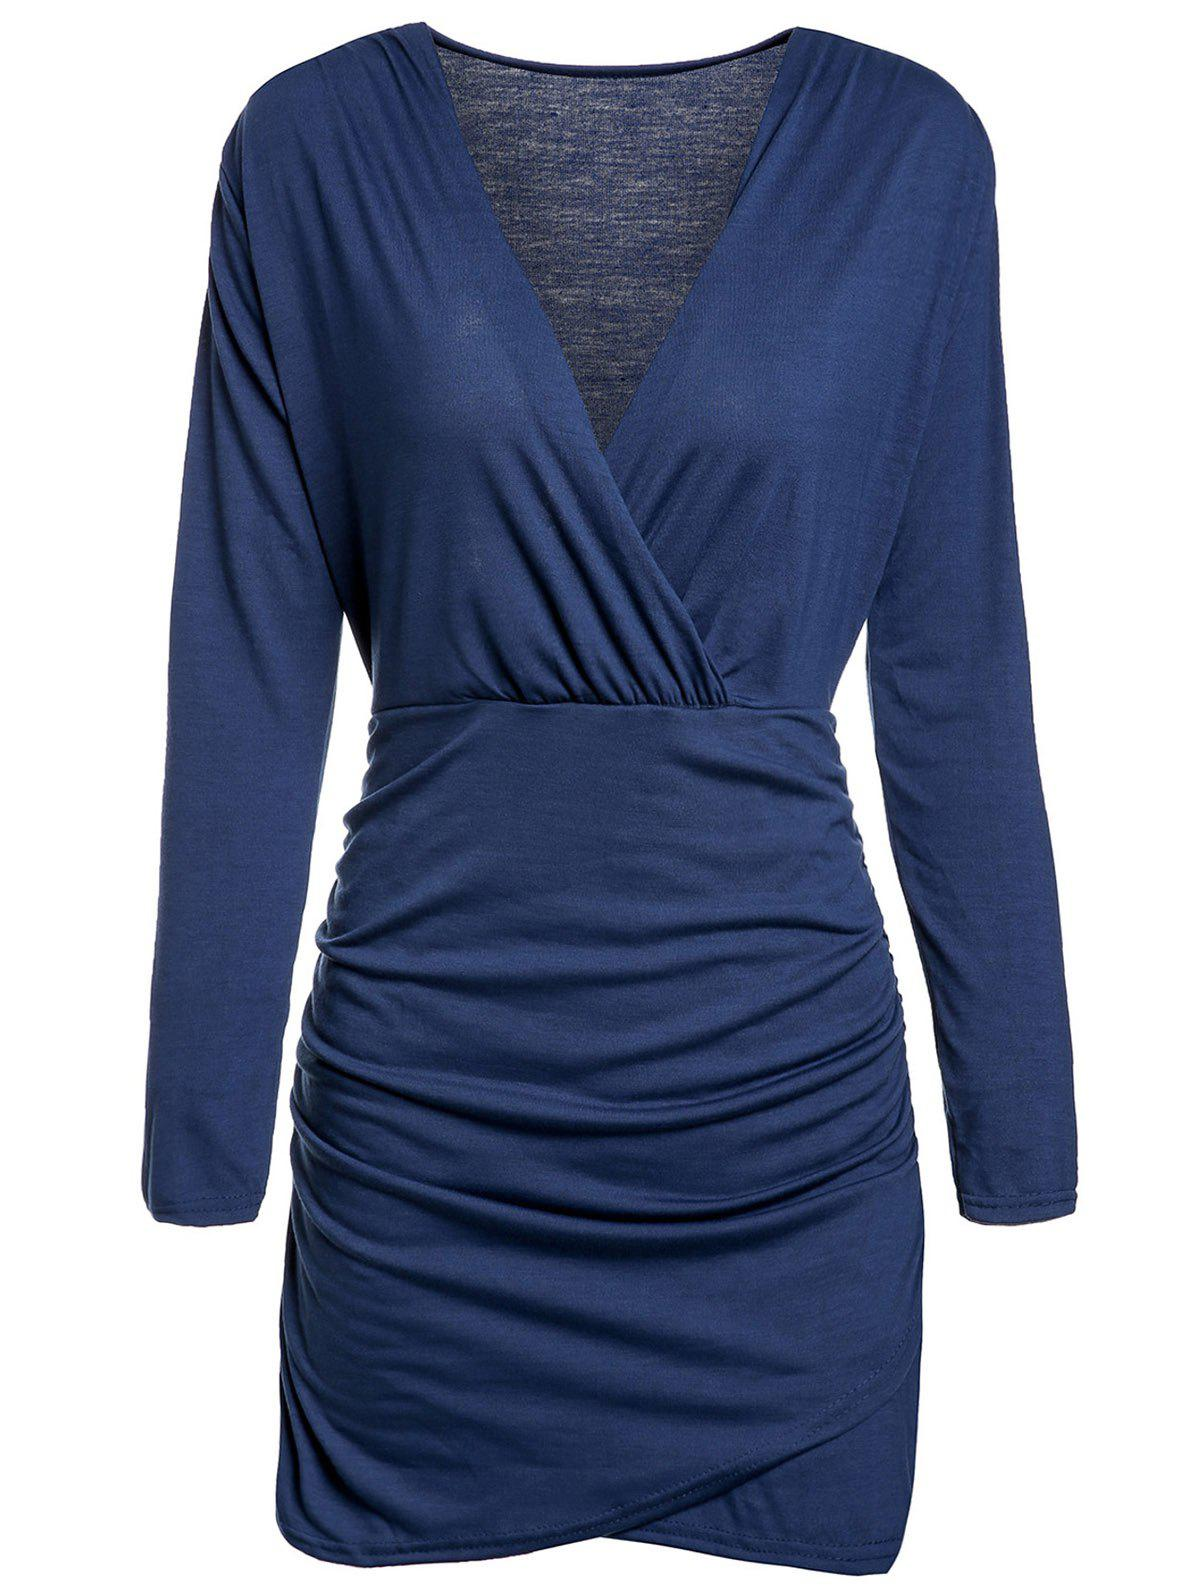 Alluring Plunging Neck Long Sleeve Ruffled Solid Color Women's Dress - BLUE L